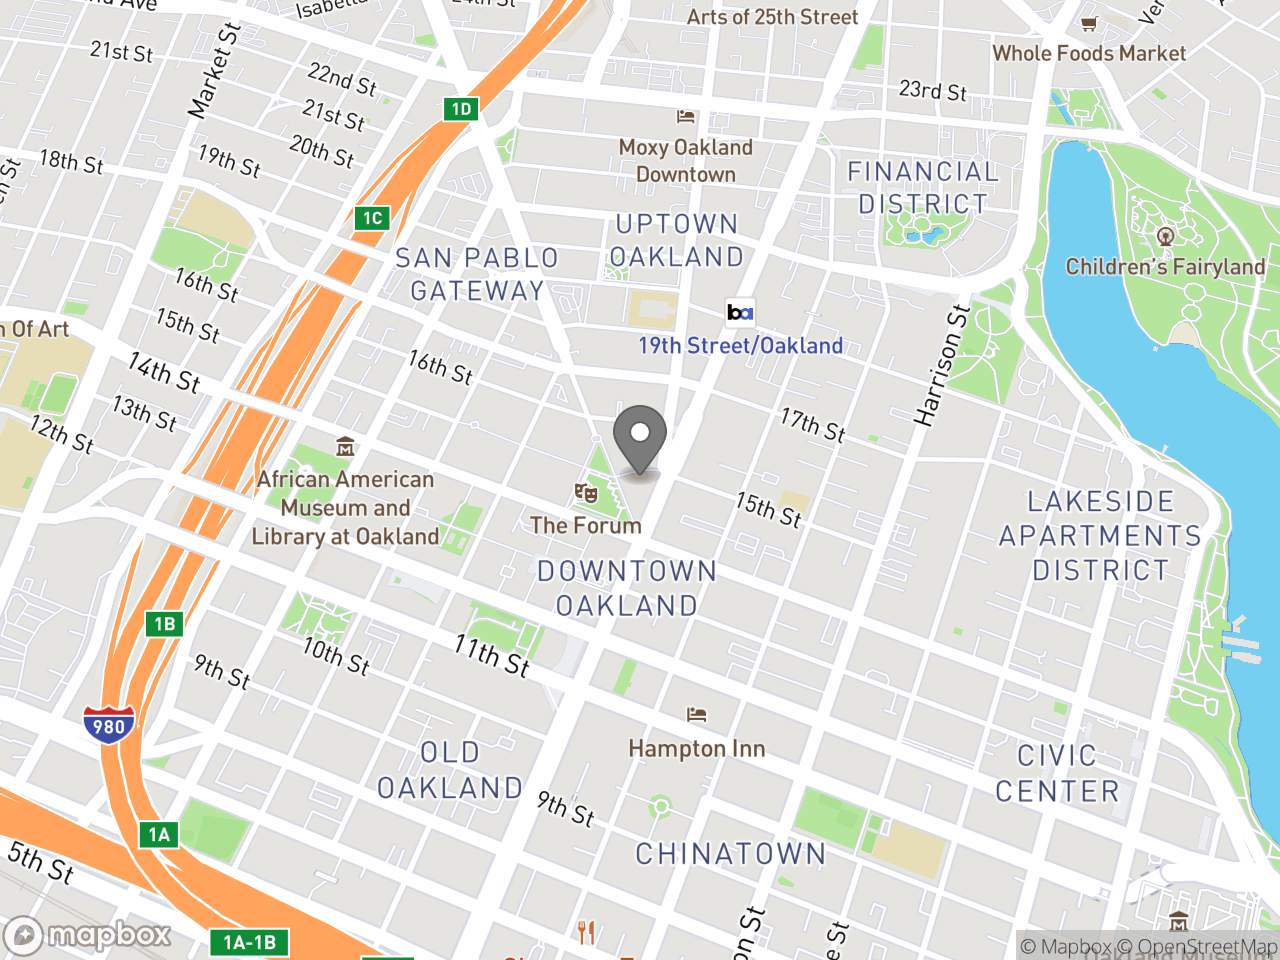 Map location for Youth Advisory Commission Monthly Meeting, located at 150 Frank H Ogawa Plaza in Oakland, CA 94612